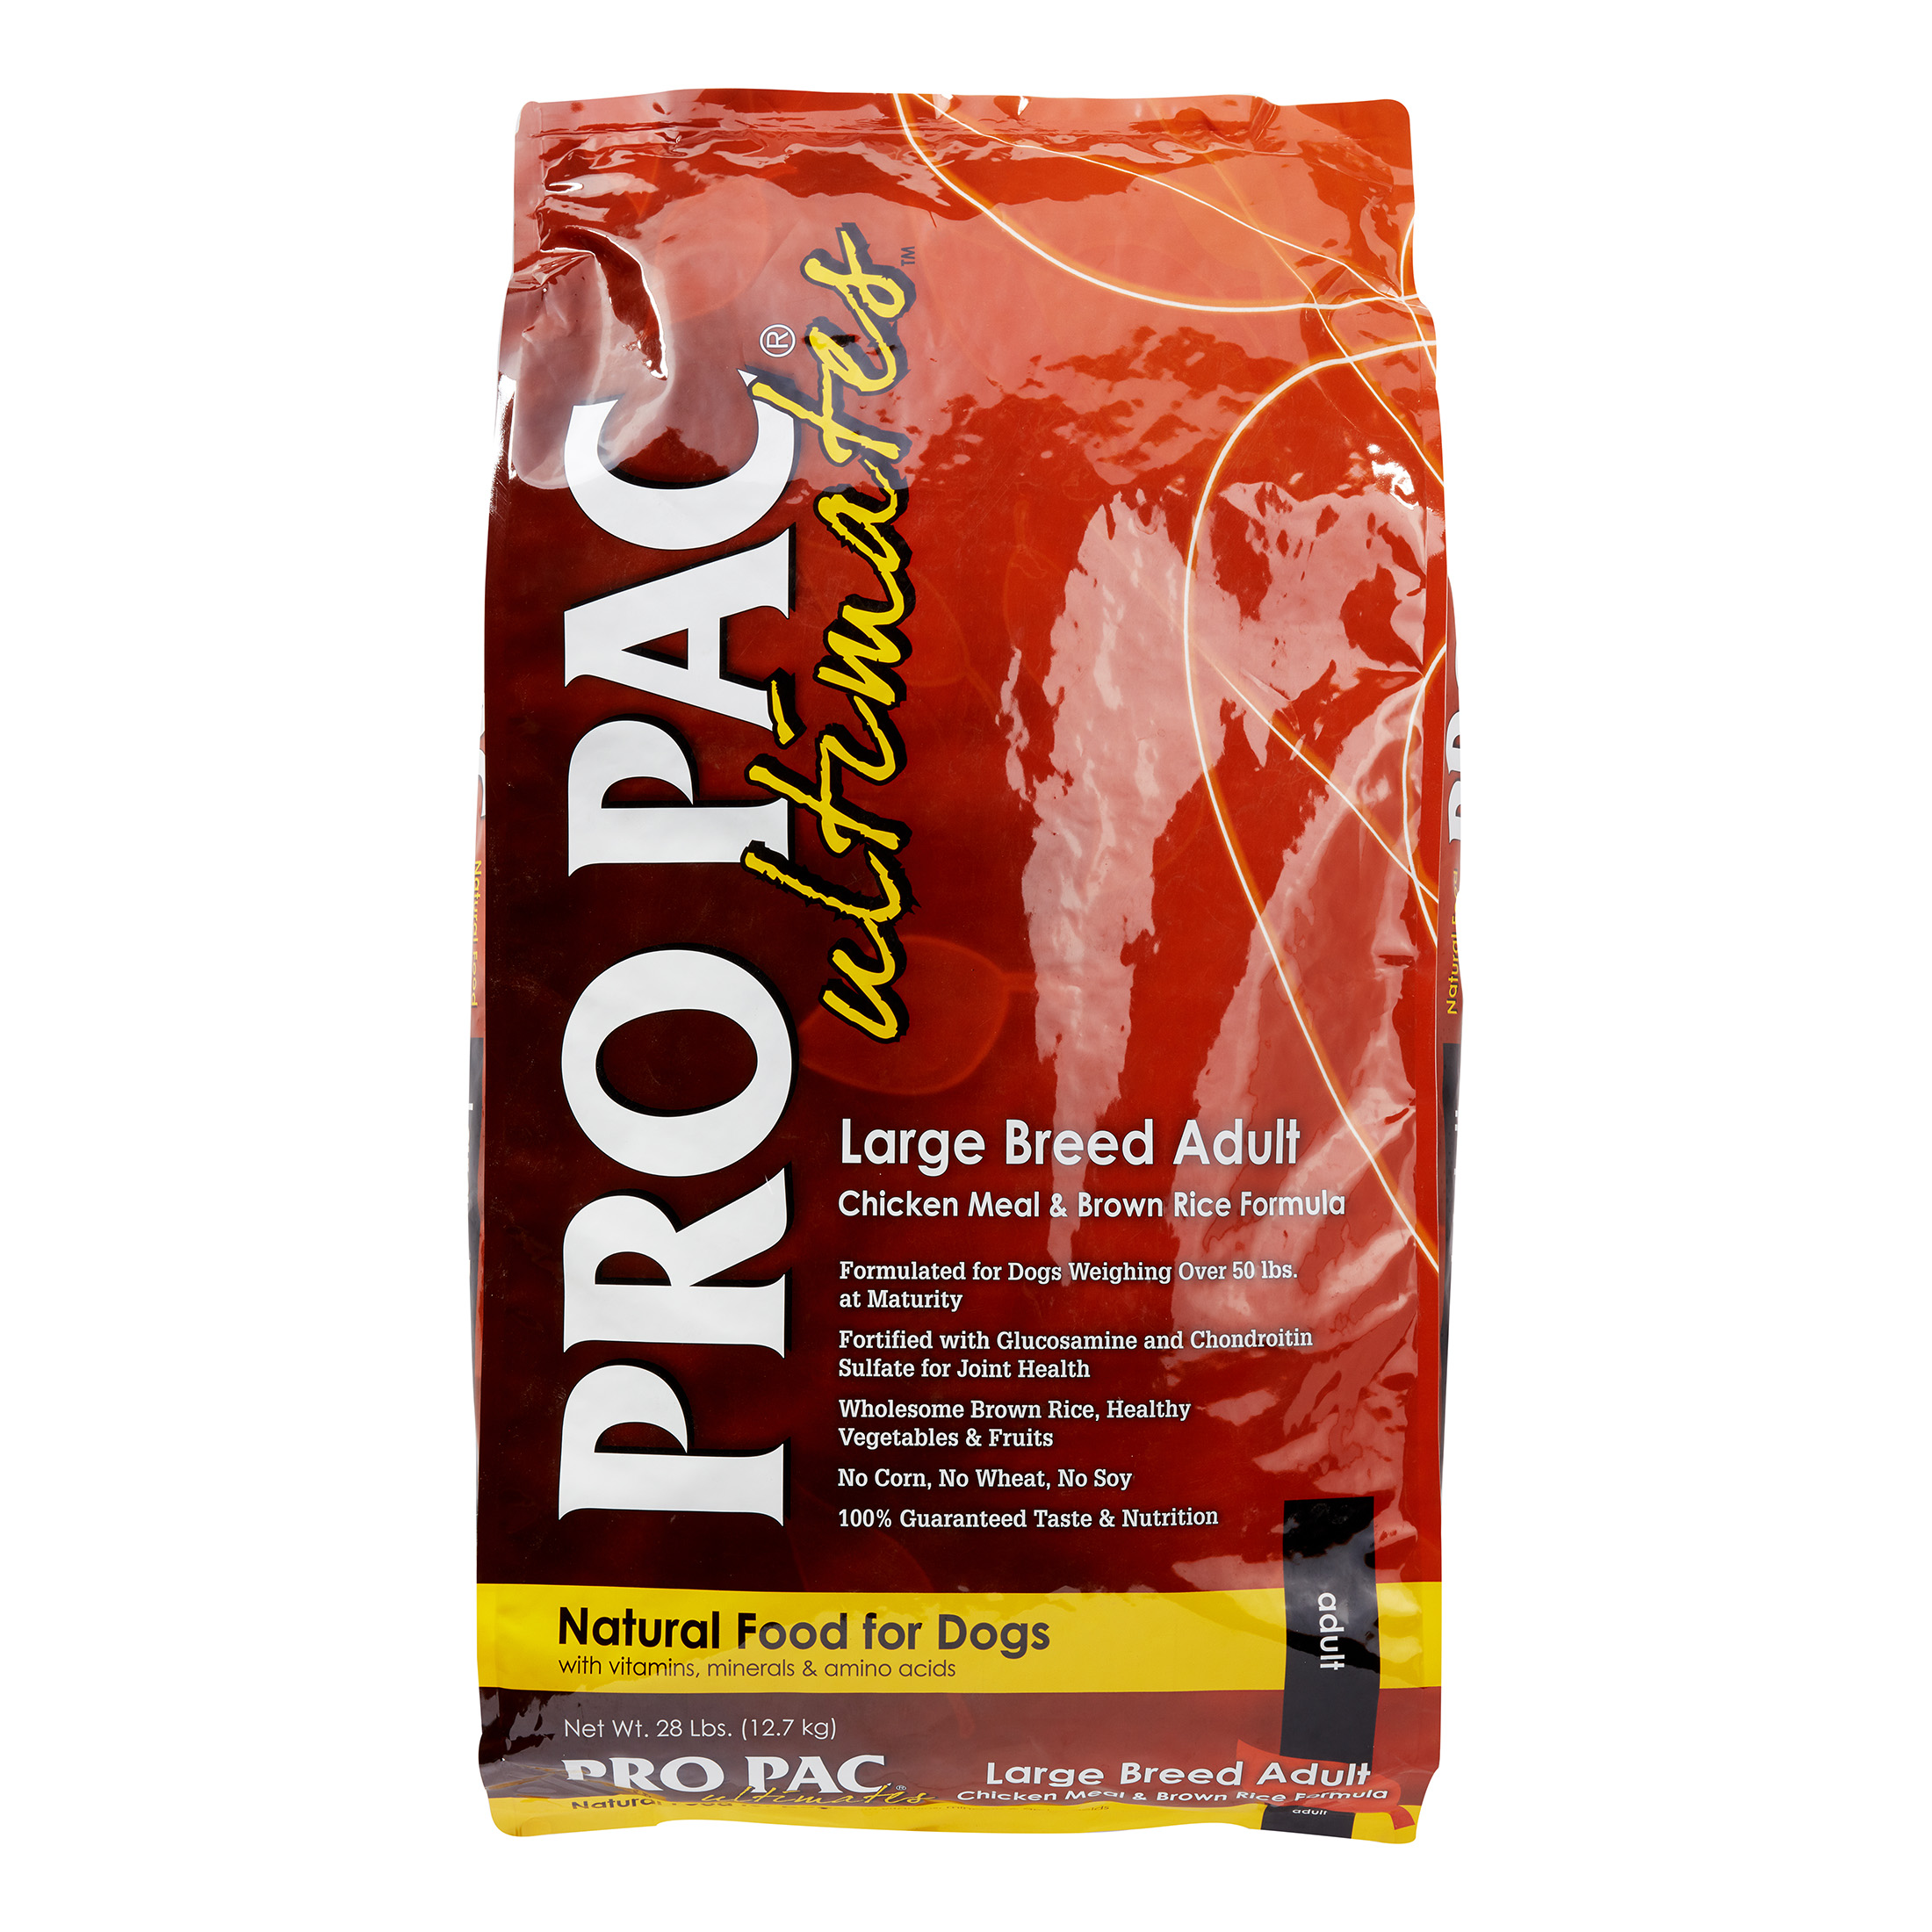 Pro Pac Ultimates Chicken Meal & Brown Rice Formula Large Breed Dry Dog Food, 28 lb